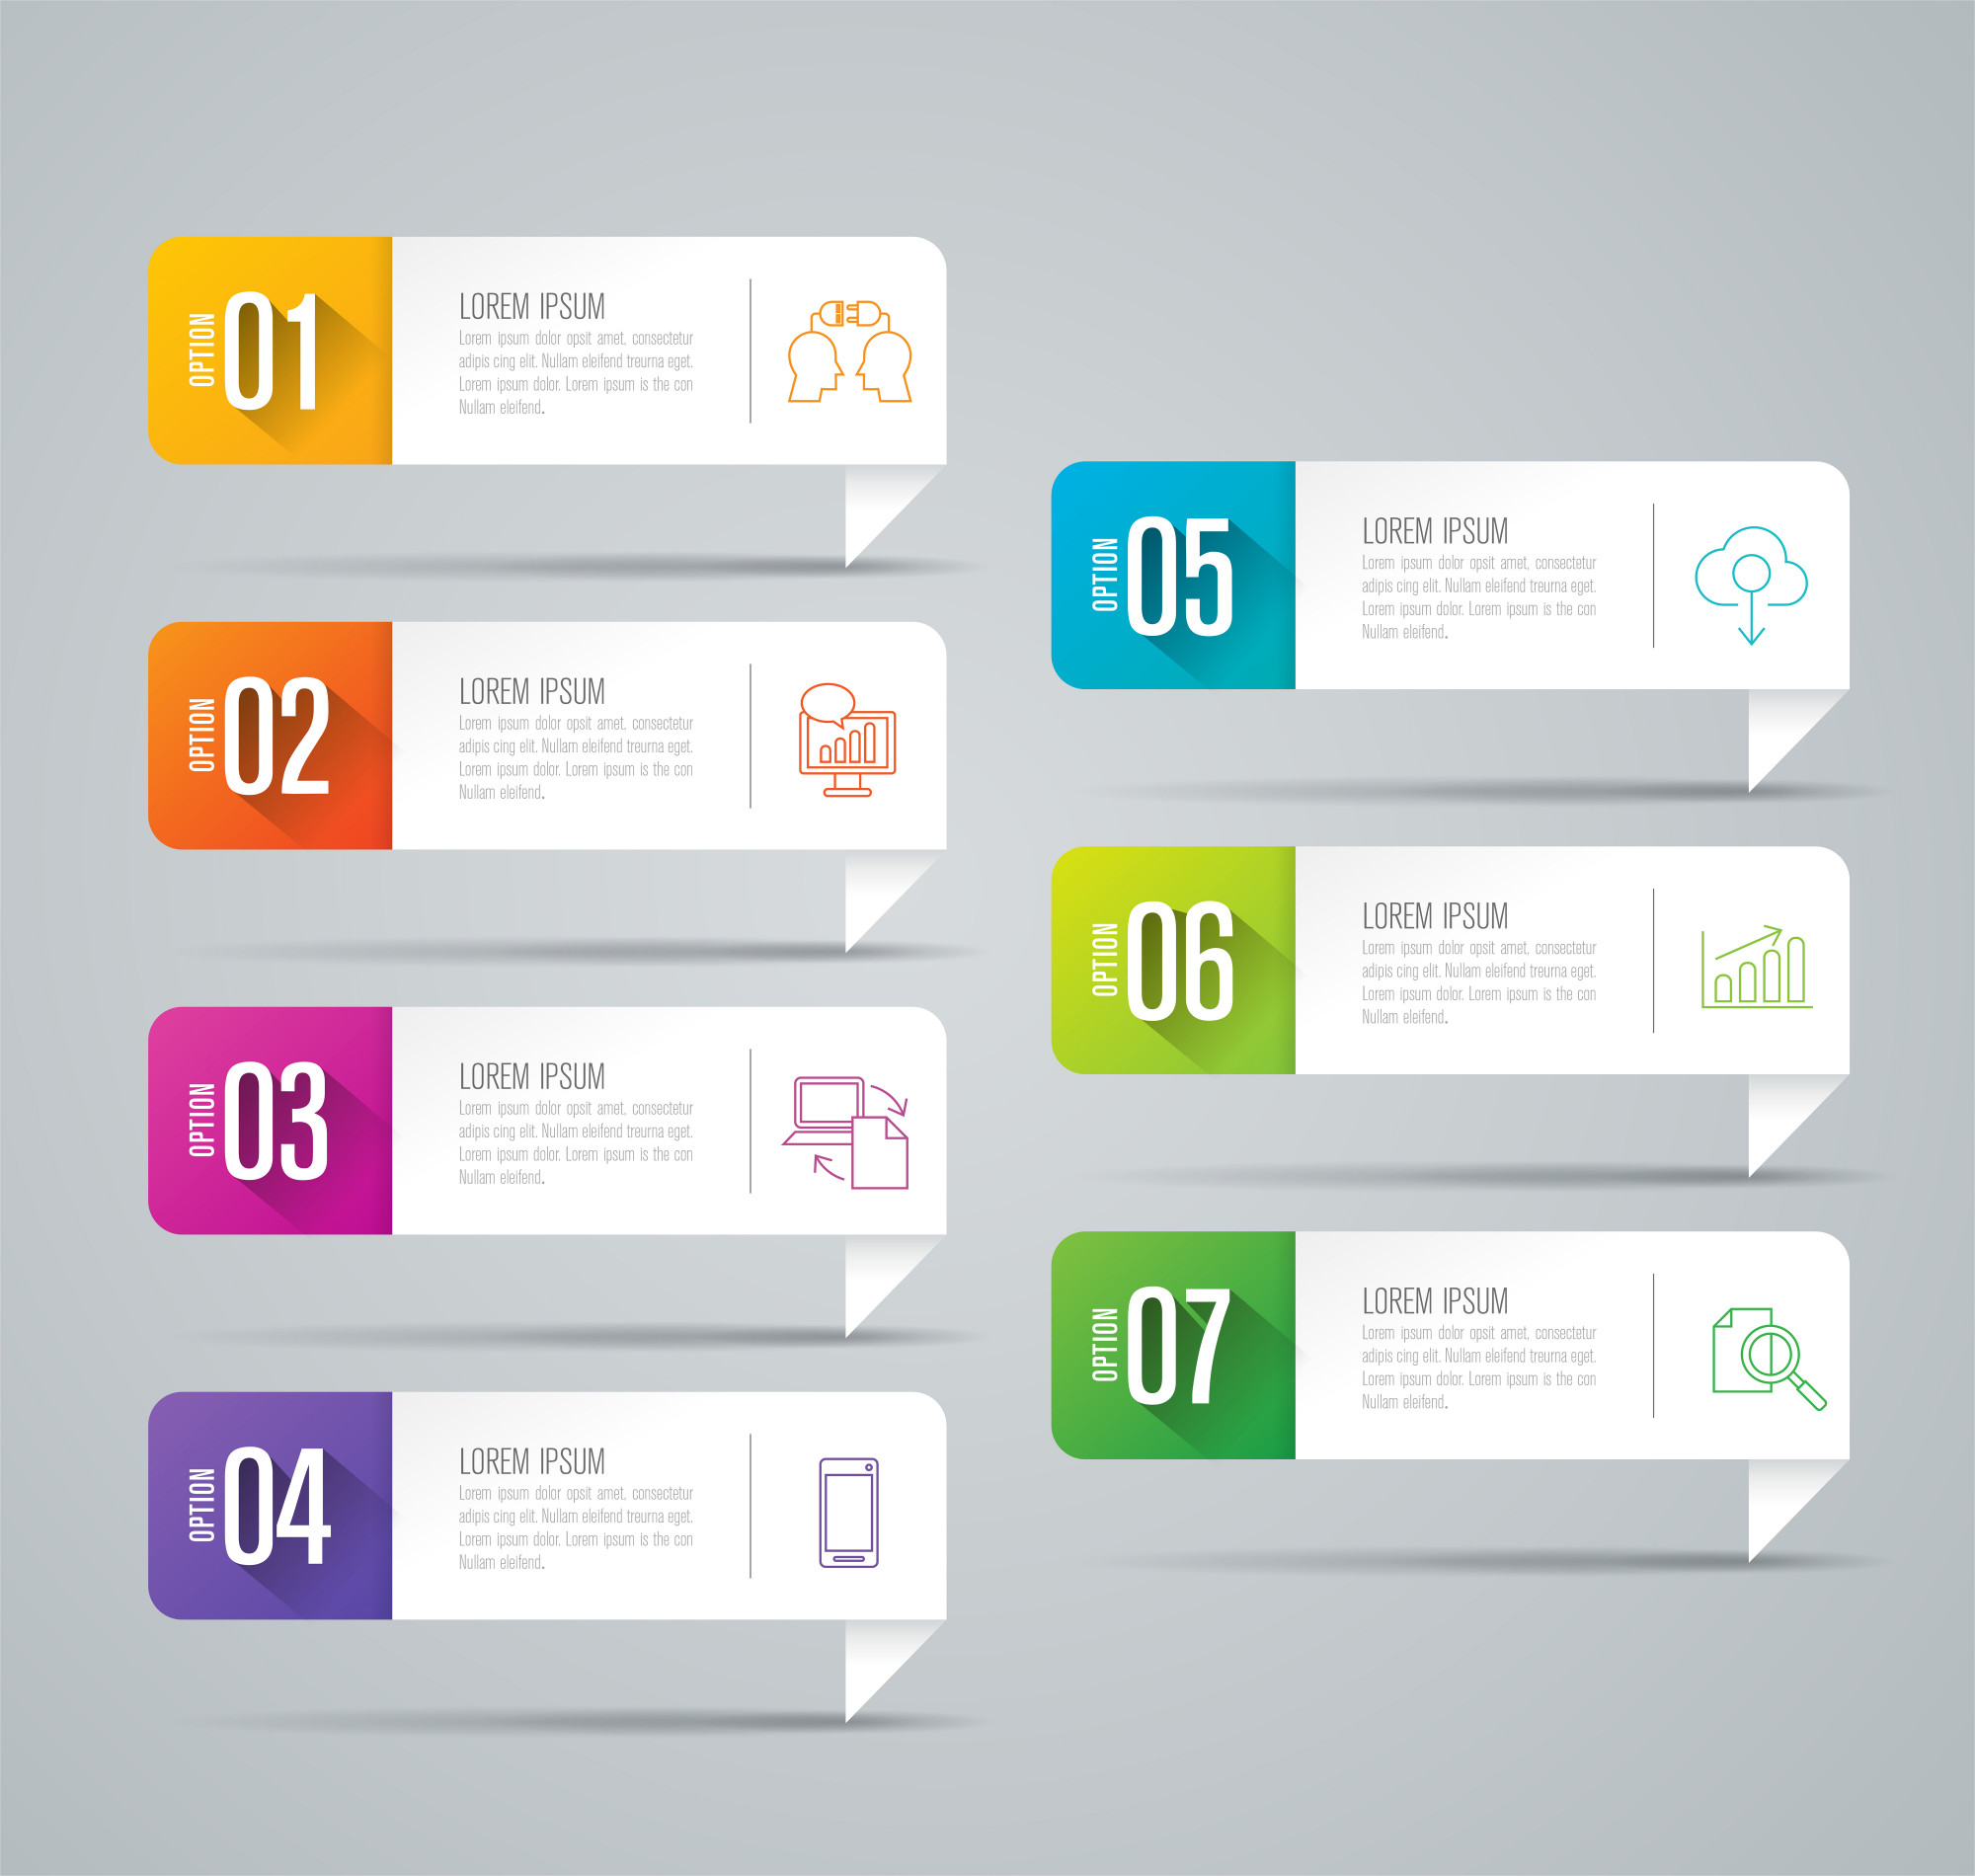 7 steps business infographic elements for the presentation